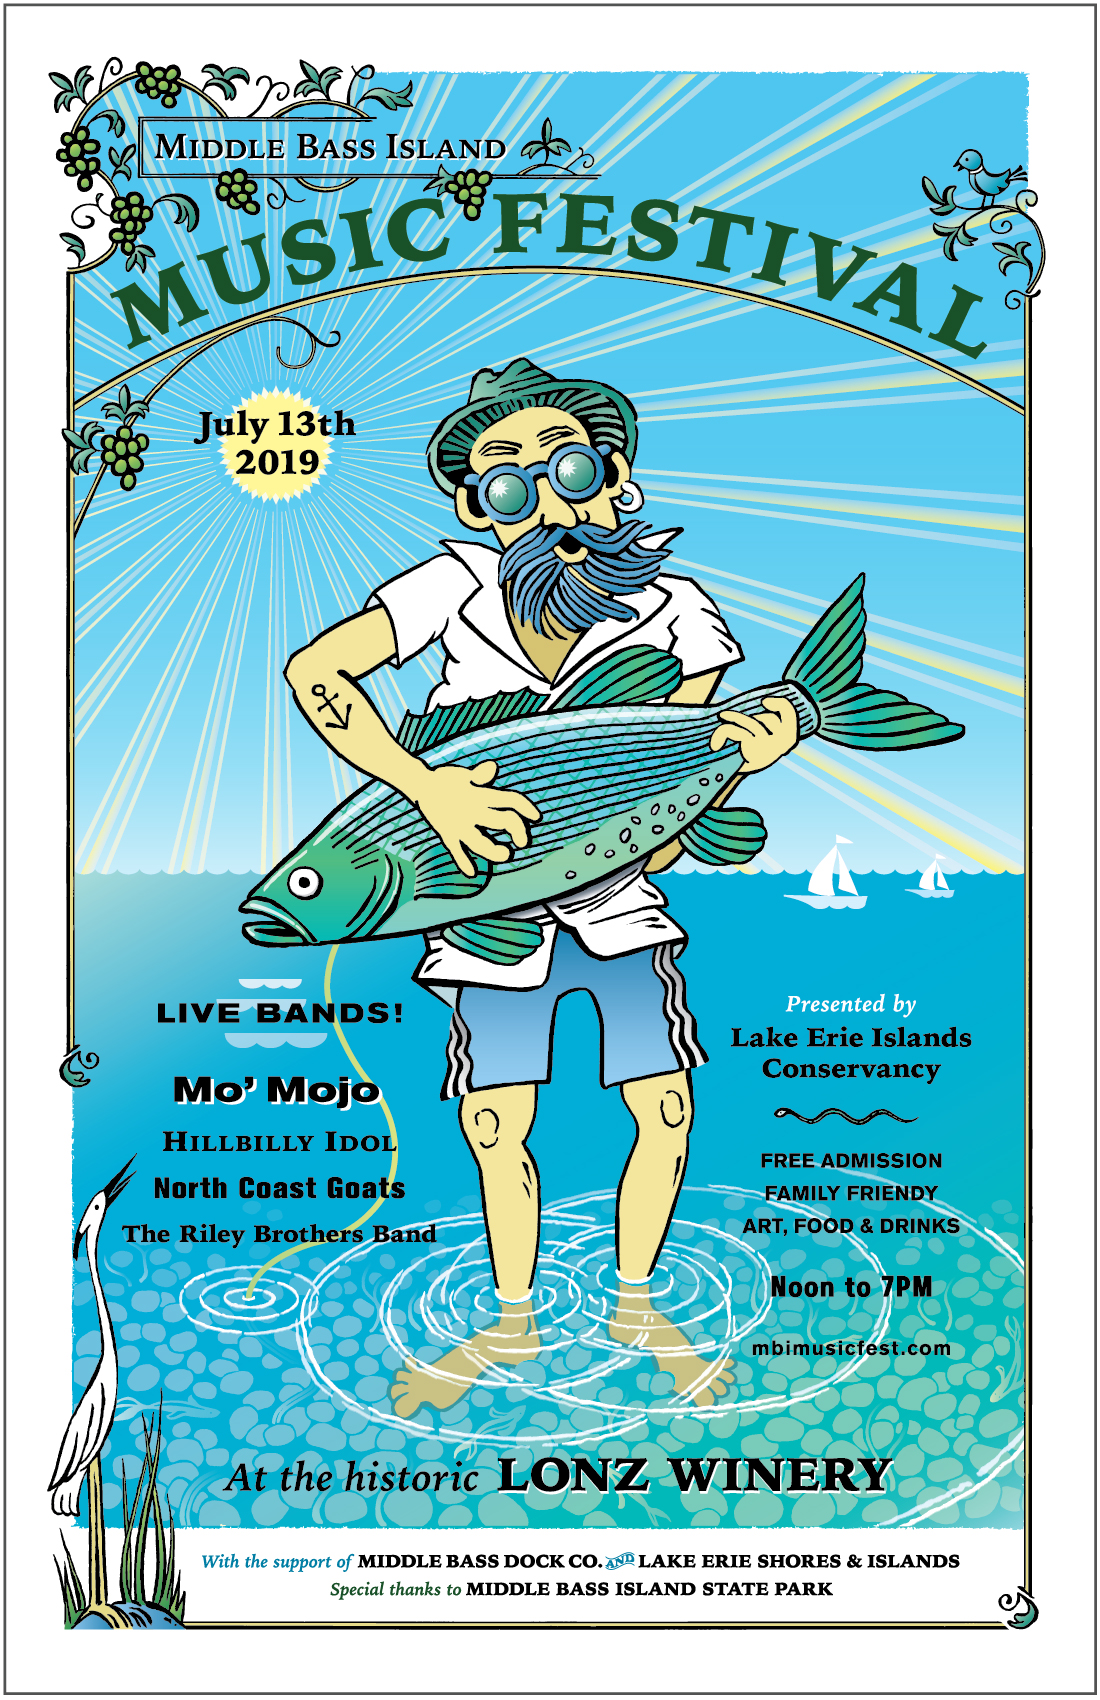 2019 Middle Bass Island Music Festival Poster